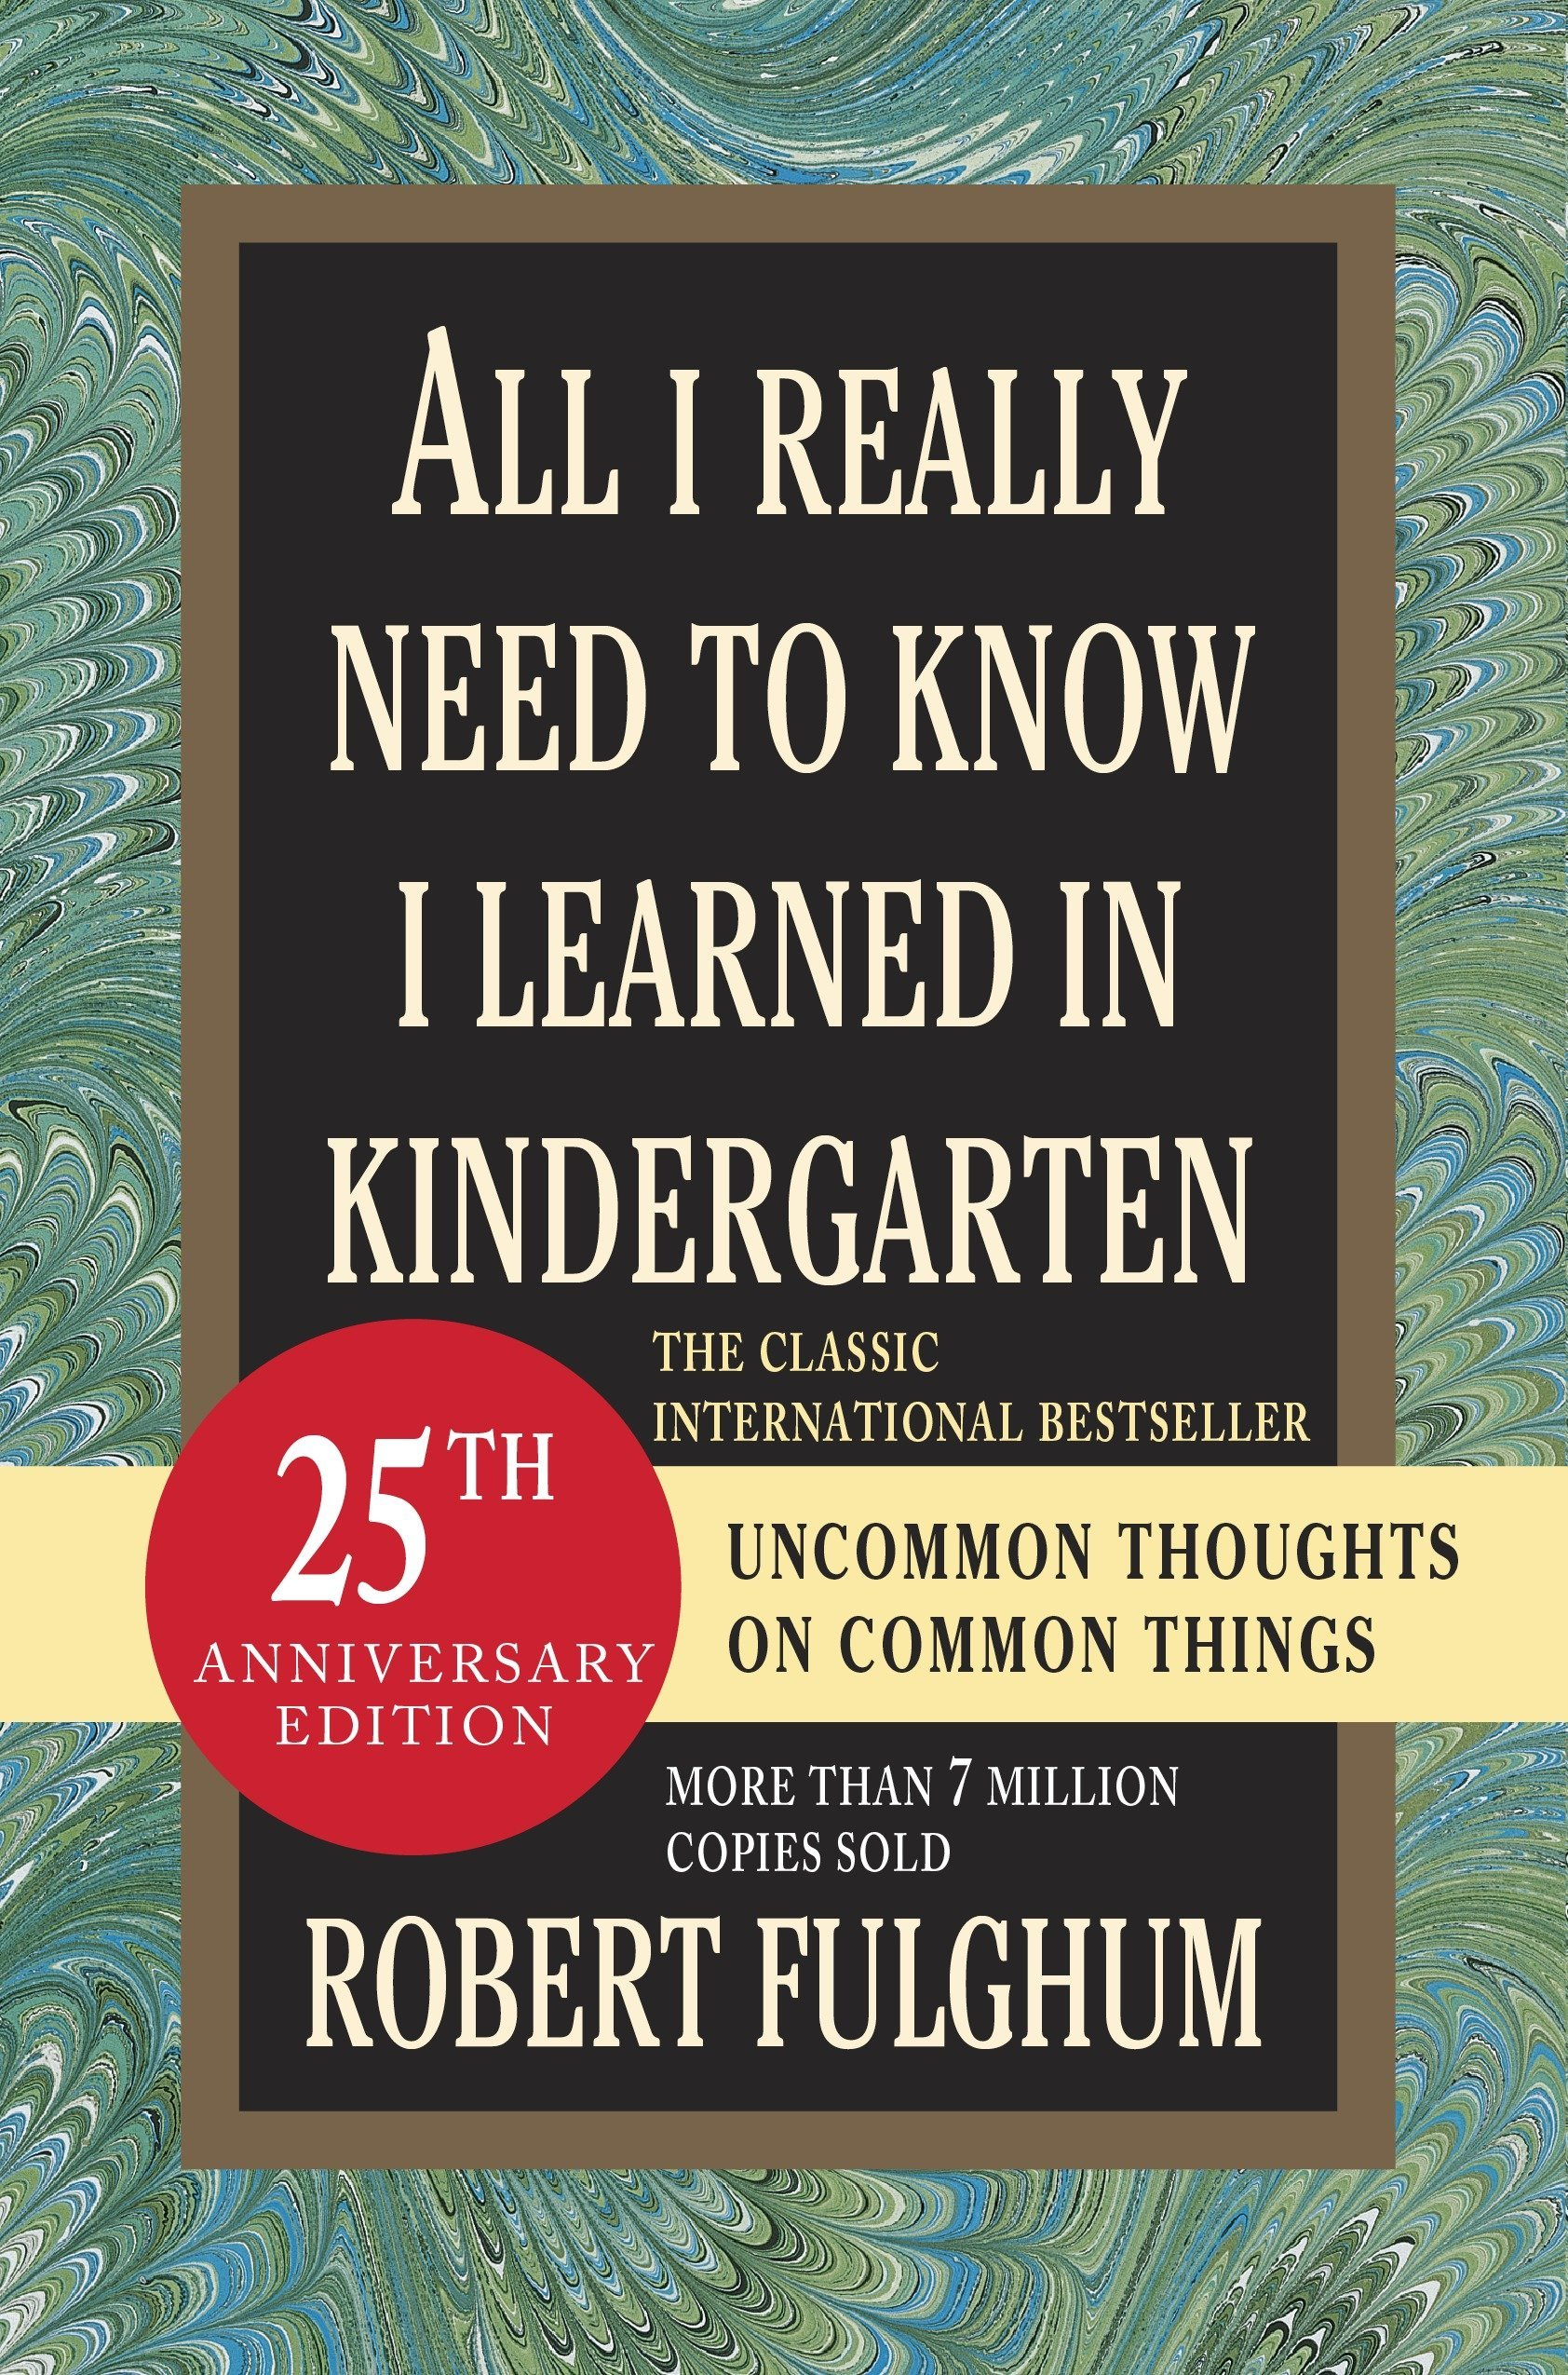 All I Really Need to Know I Learned in Kindergarten: Uncommon Thoughts on Common Things ebook